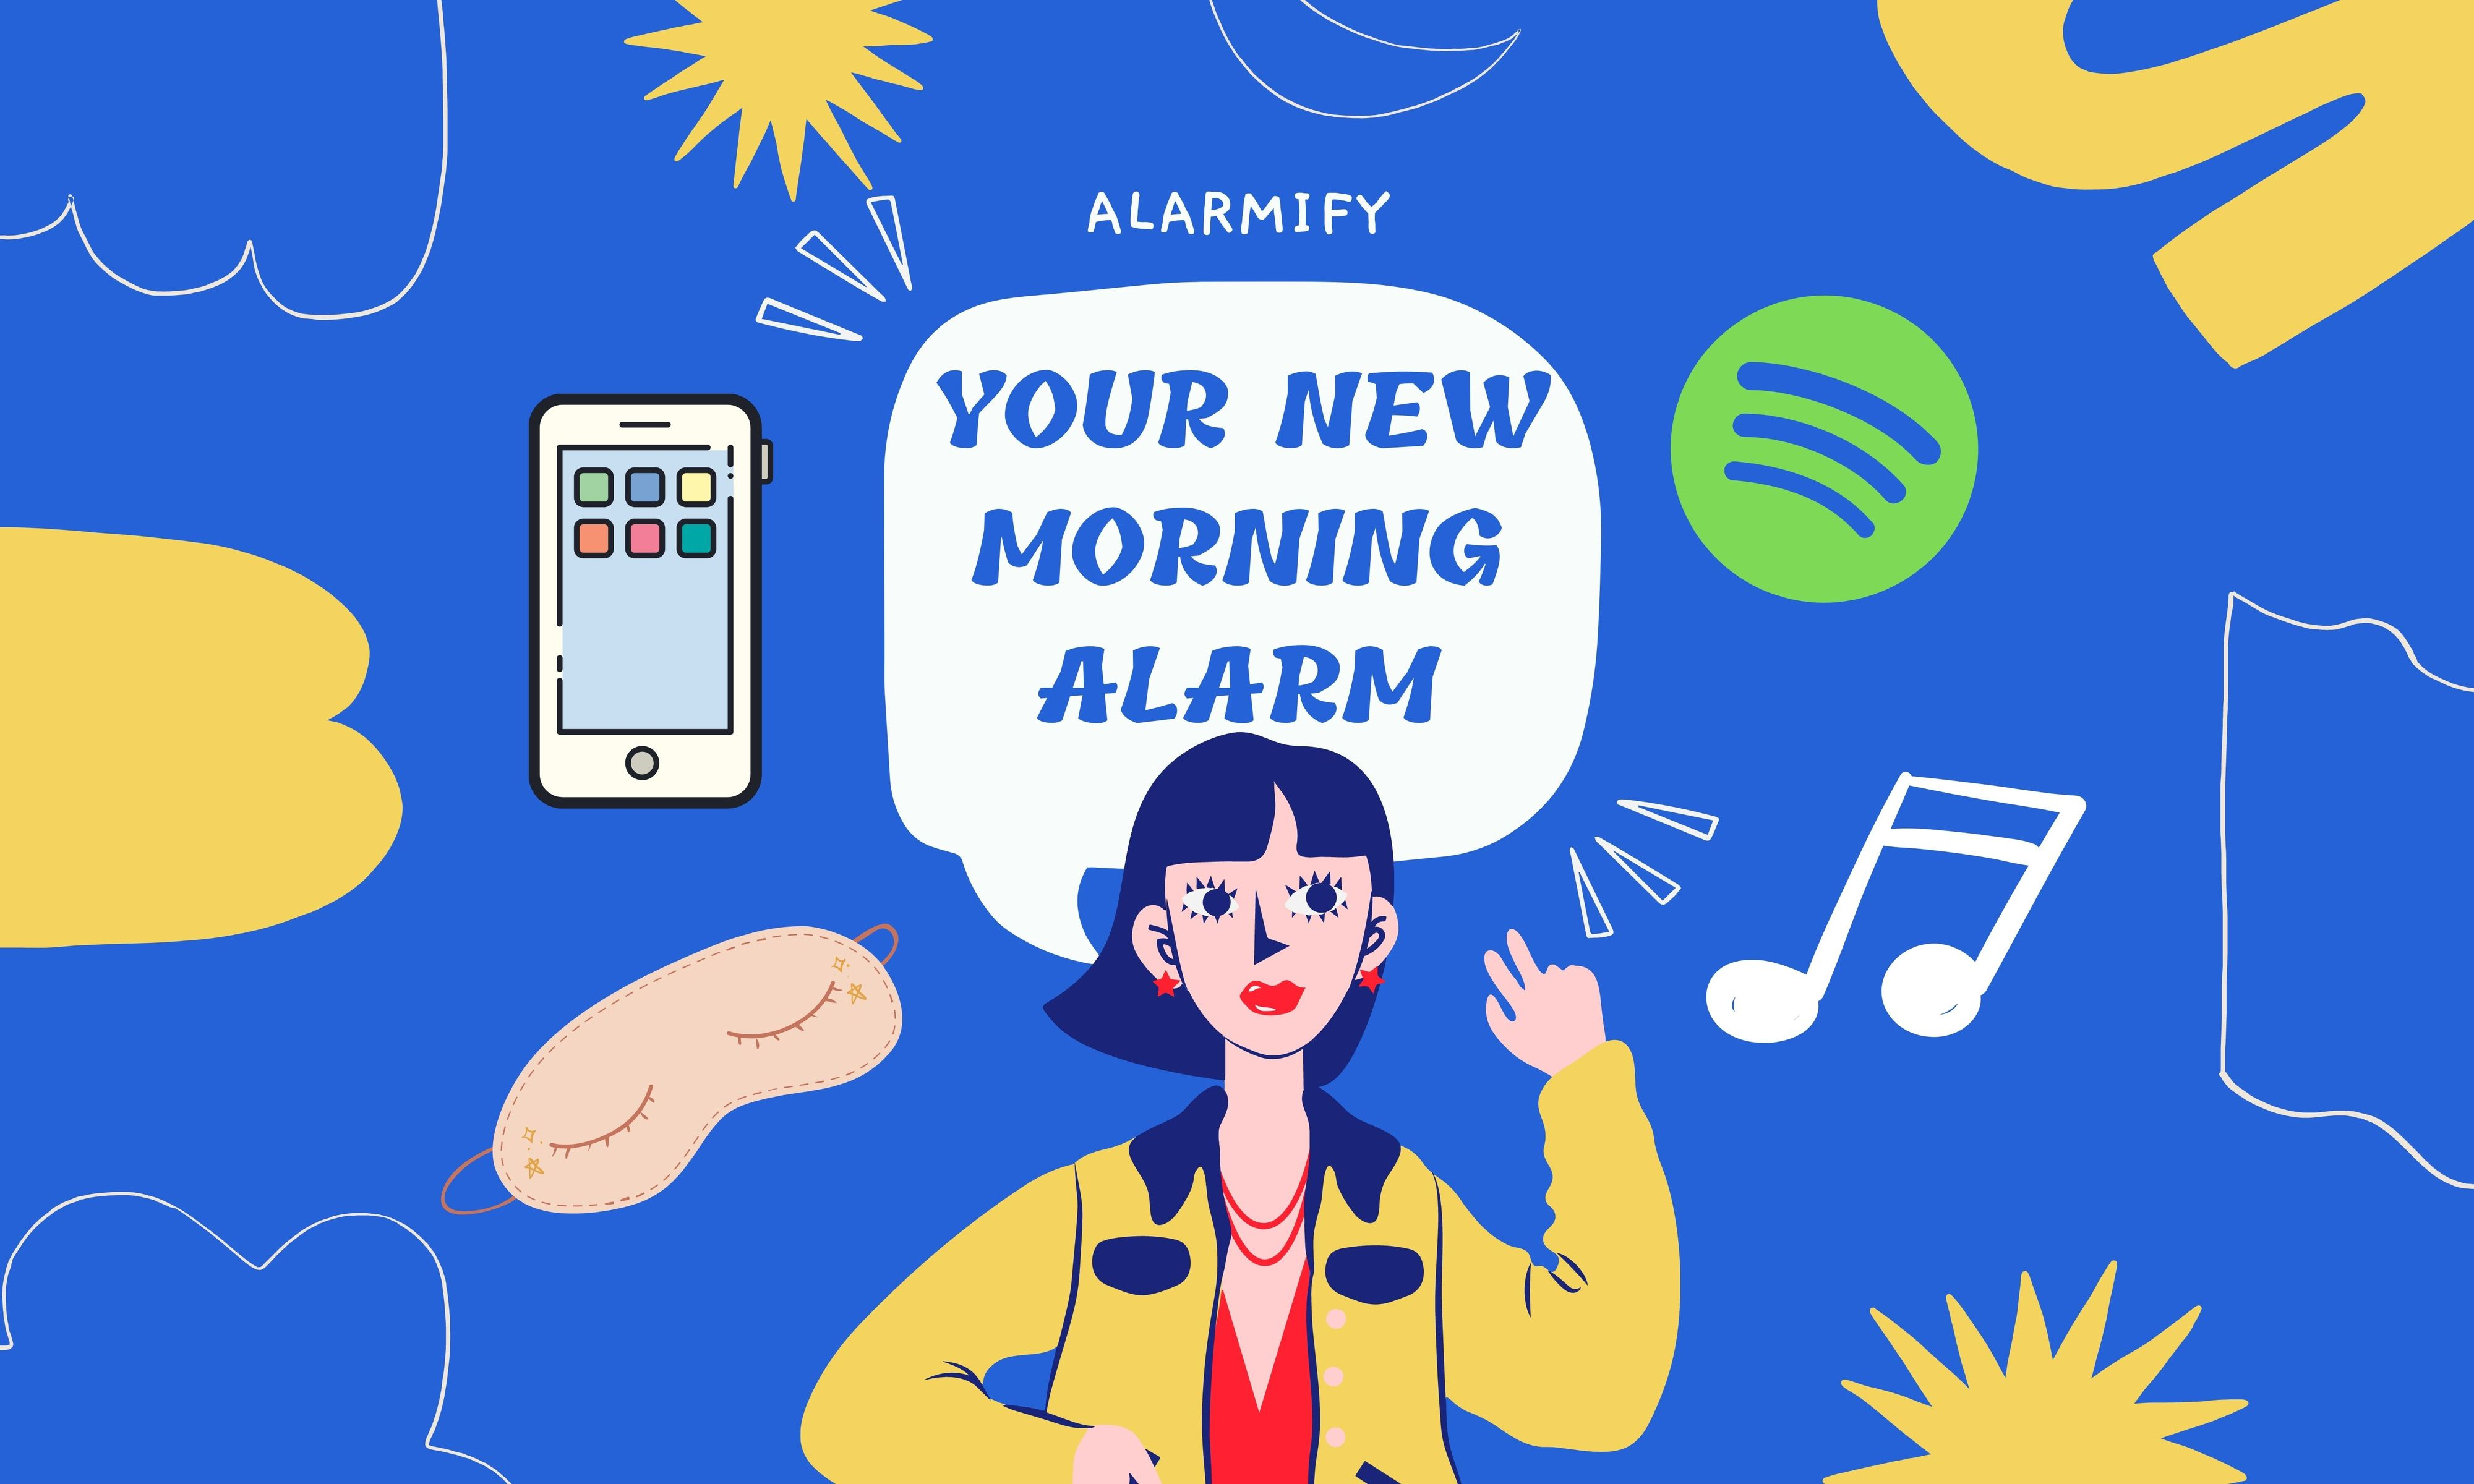 YOUR NEW MORNING ALARM